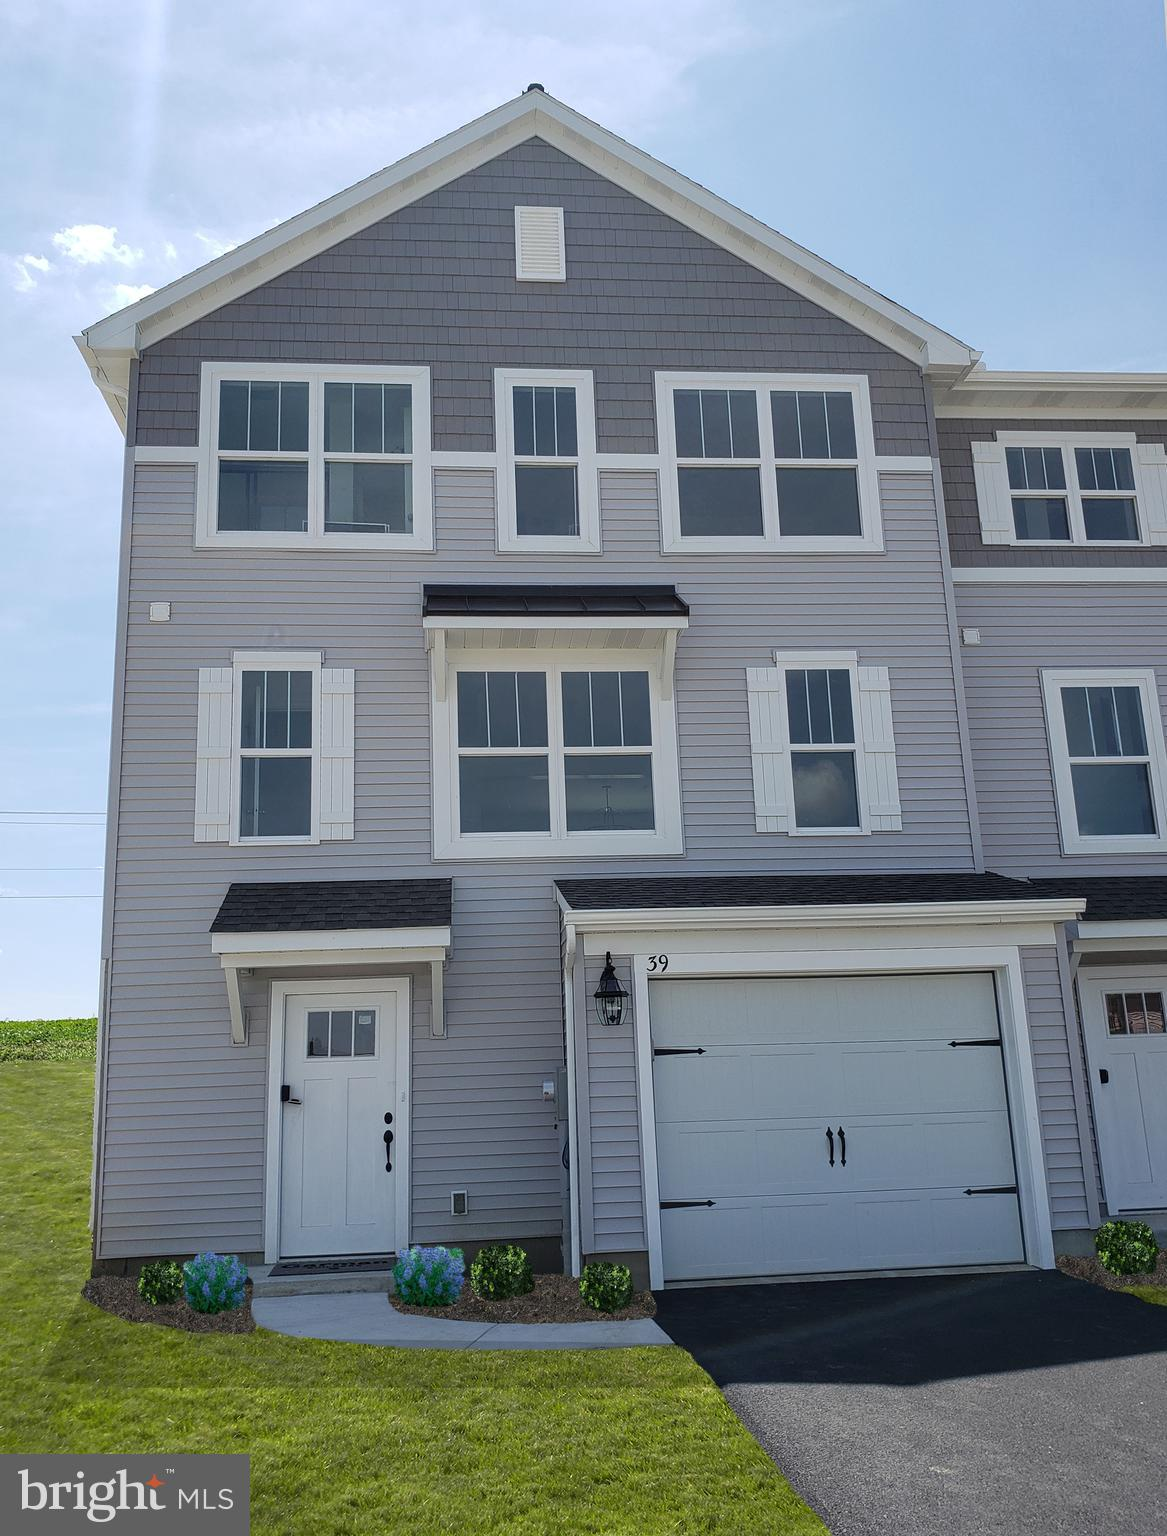 39 SOUTHSIDE DRIVE, WILLOW STREET, PA 17584